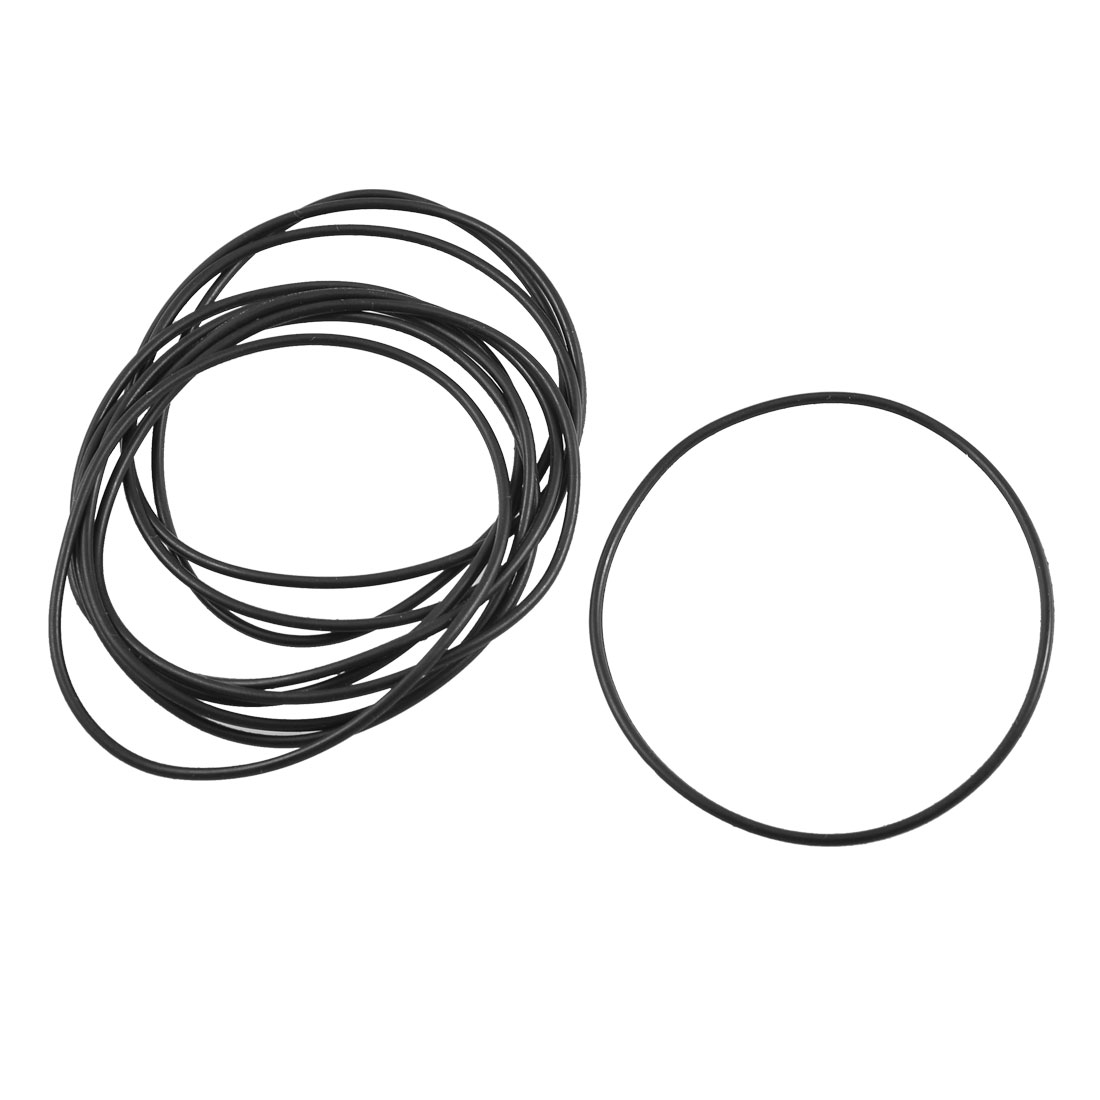 Unique Bargains 10 Pcs 55mm Inside Dia 1 5mm Thick Oil Filter O Ring